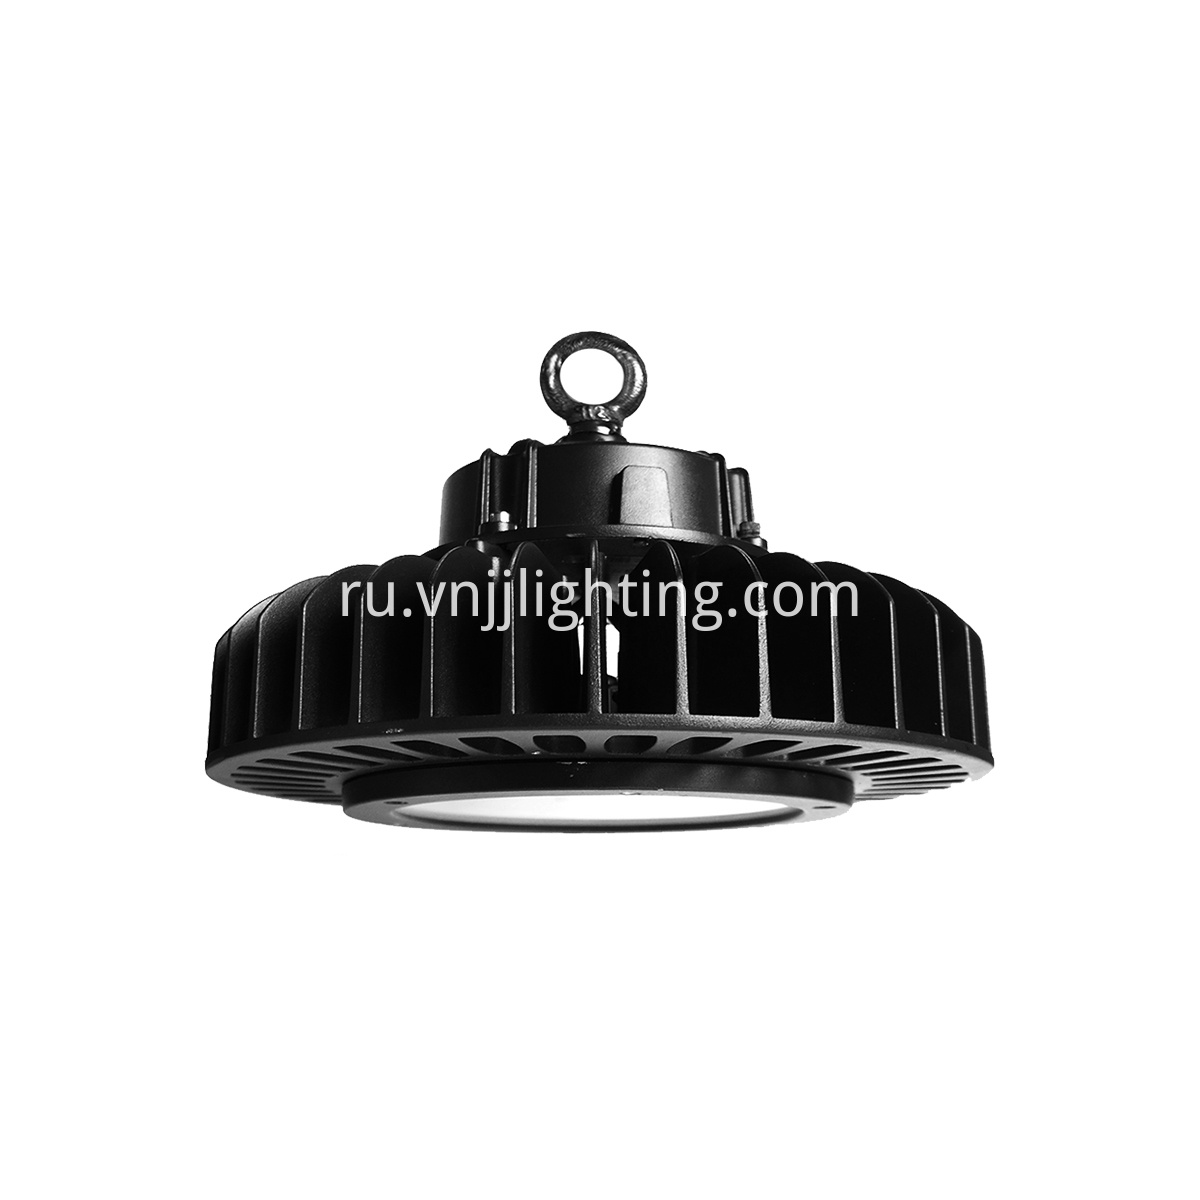 UFO LED High Bay Light 3